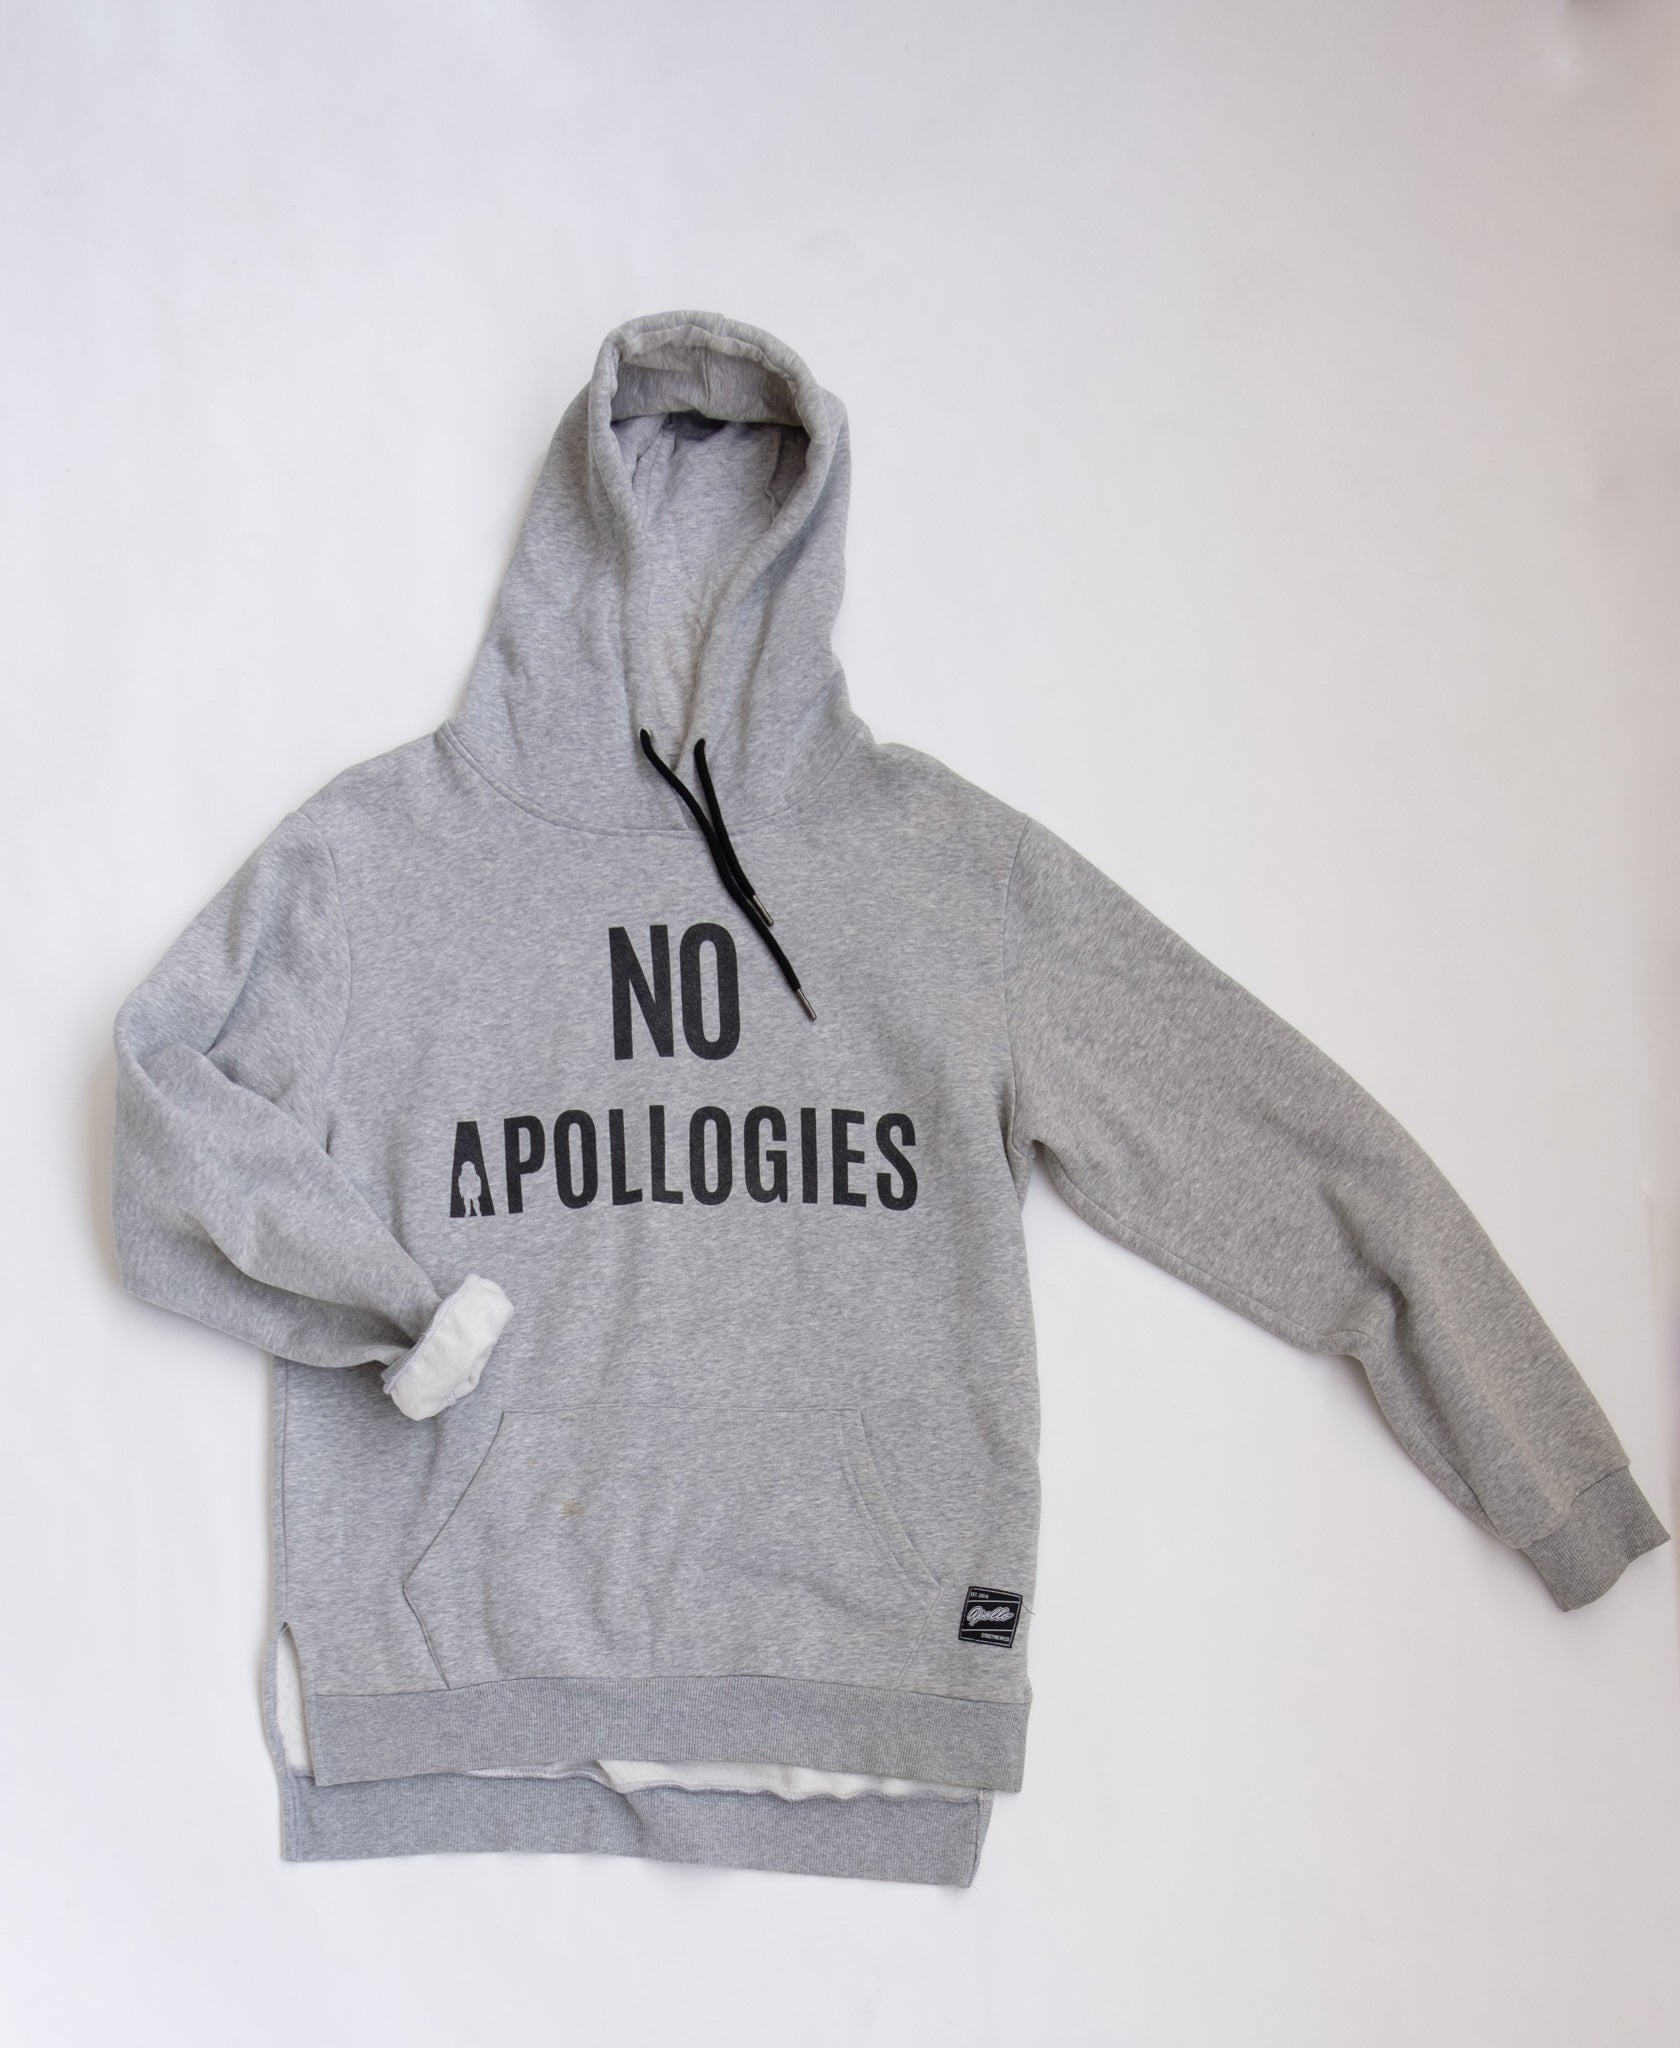 No Apollogies Pull Over